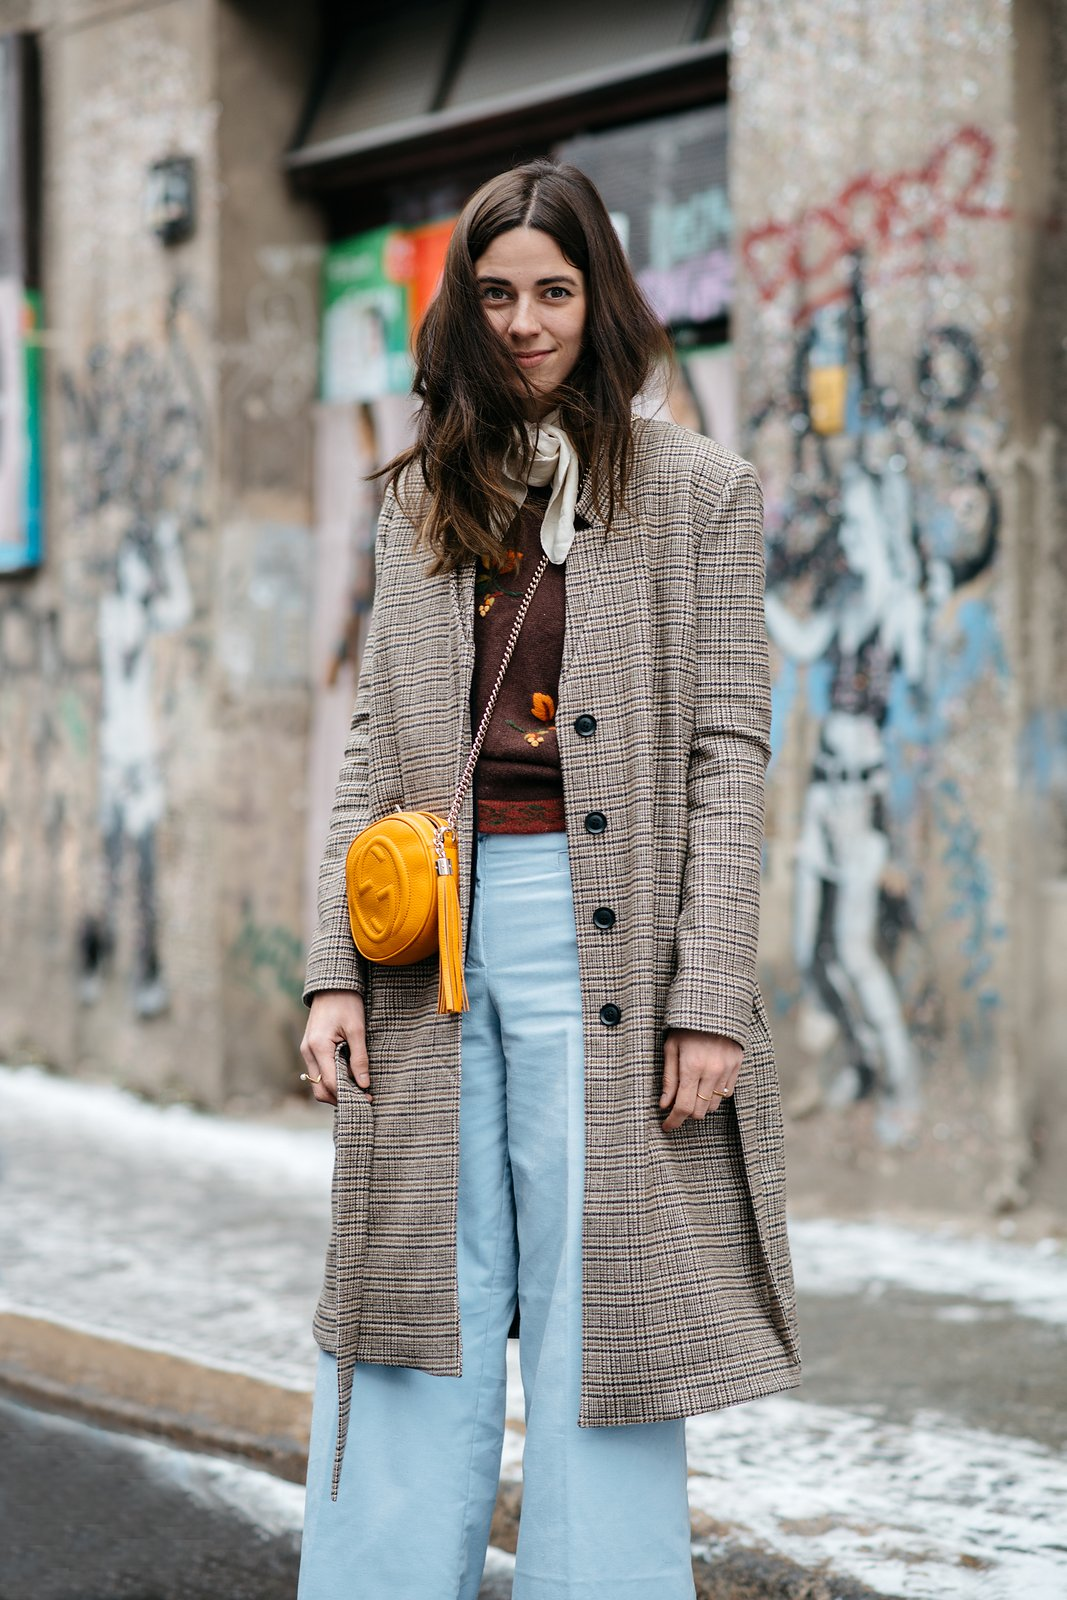 Street Style India Fashion Blog: 5 Lessons To Learn From Berlin Street Style